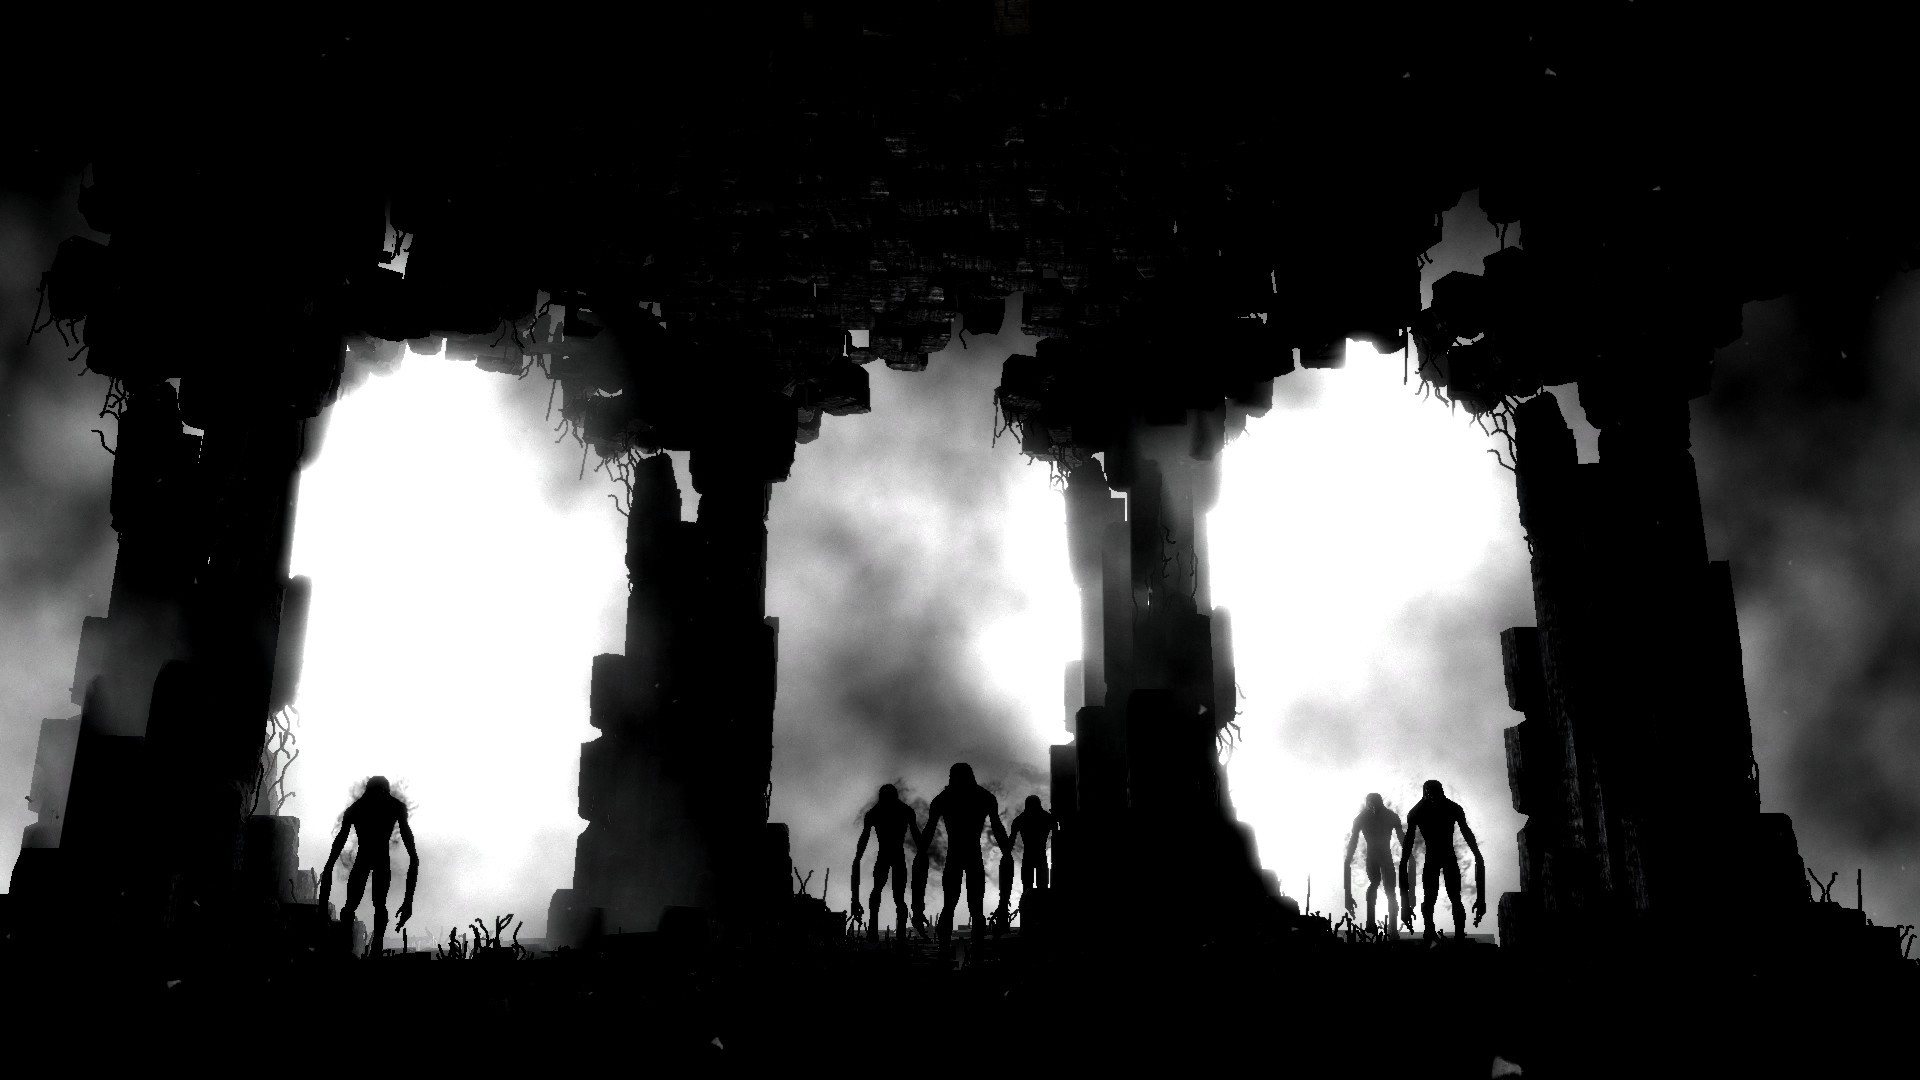 creepy silhouettes monochrome metro HD Wallpaper